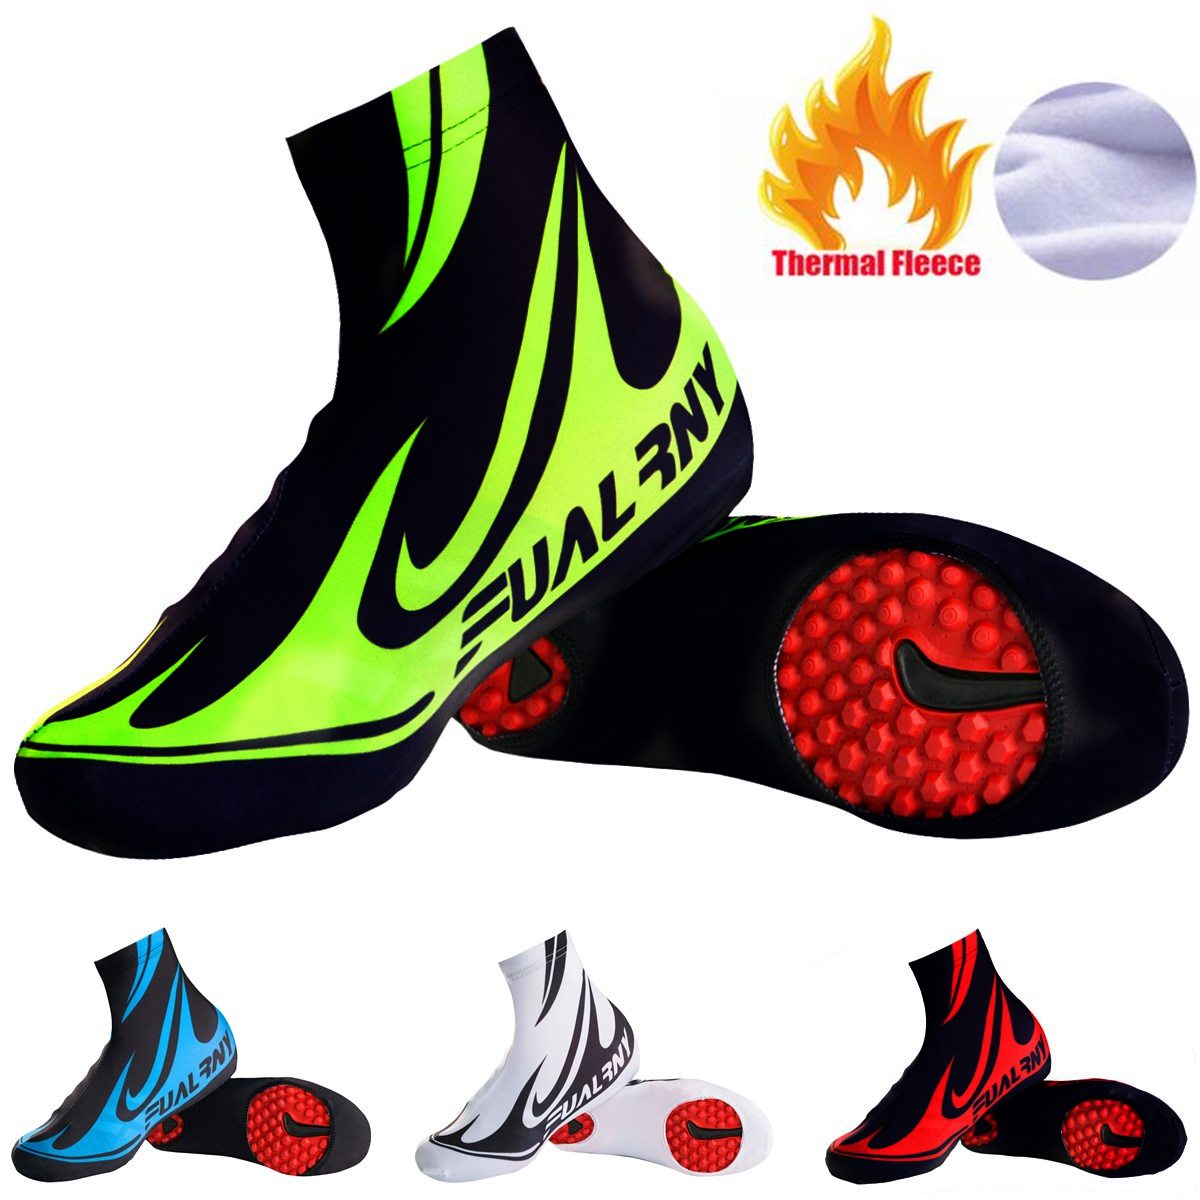 Brand Cycling Shoe Cover Reflective MTB Bicycle Overshoes Winter Thermal Fleece Road Racing Bike Shoes Cover Copriscarpe|  - title=